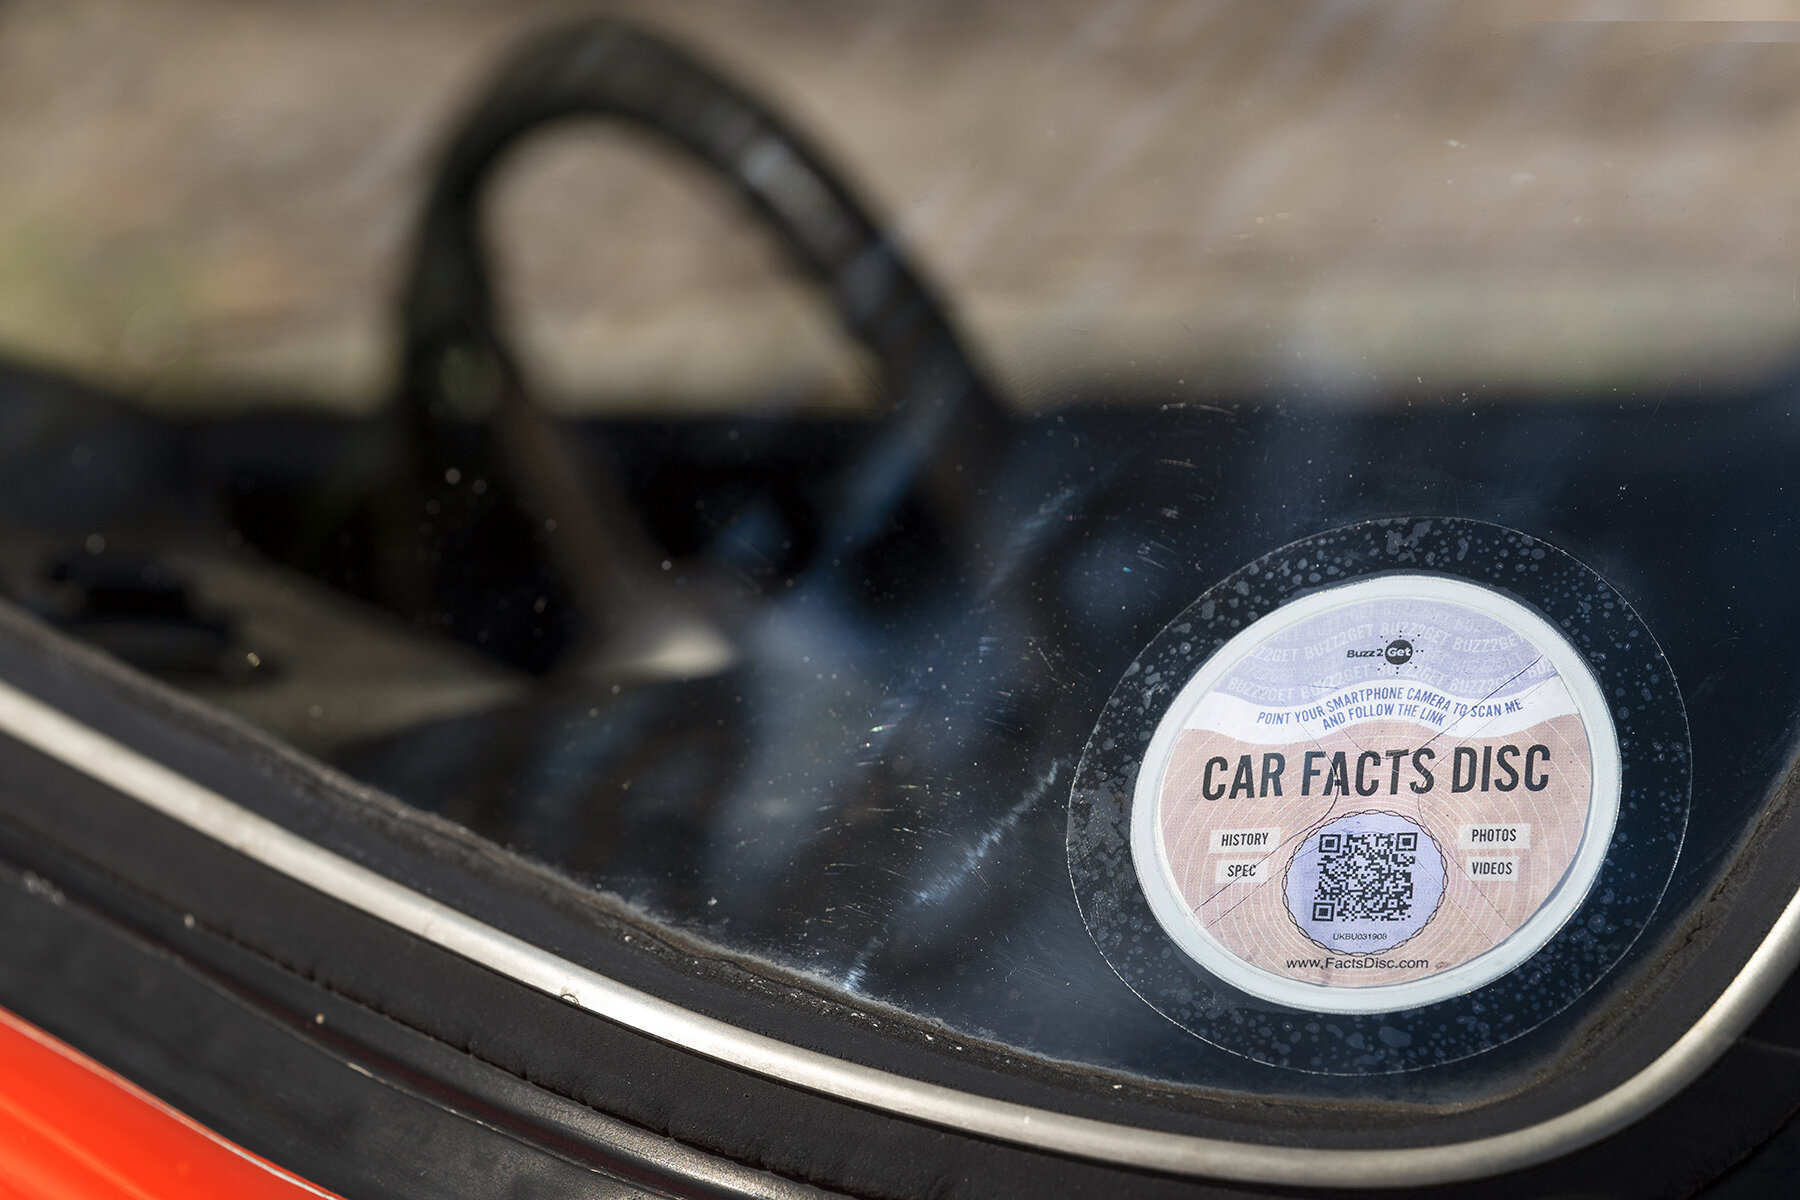 Car facts discs now available